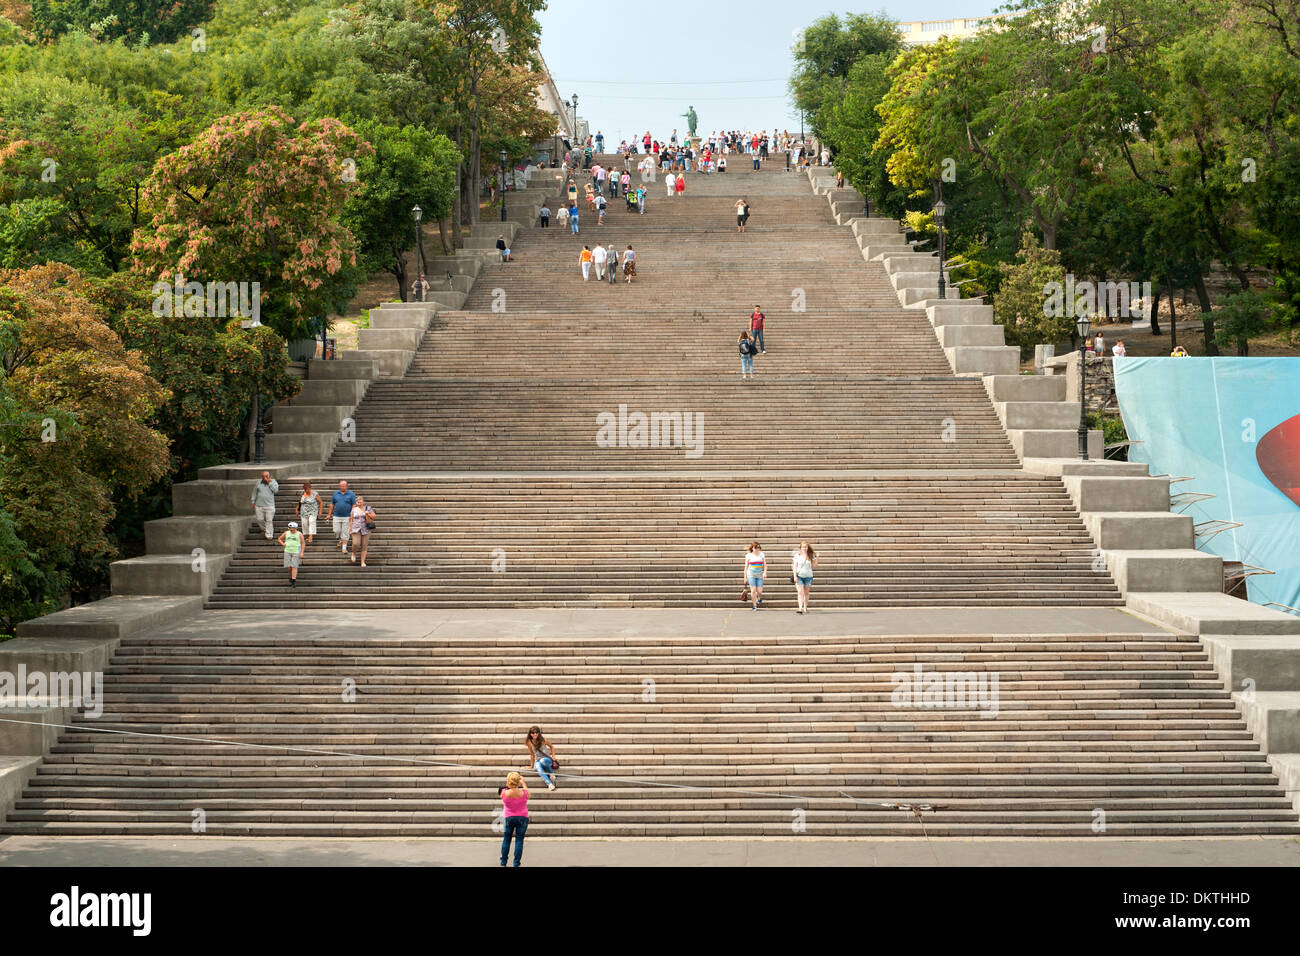 The Potemkin Stairs, a giant staircase in Odessa, Ukraine. - Stock Image